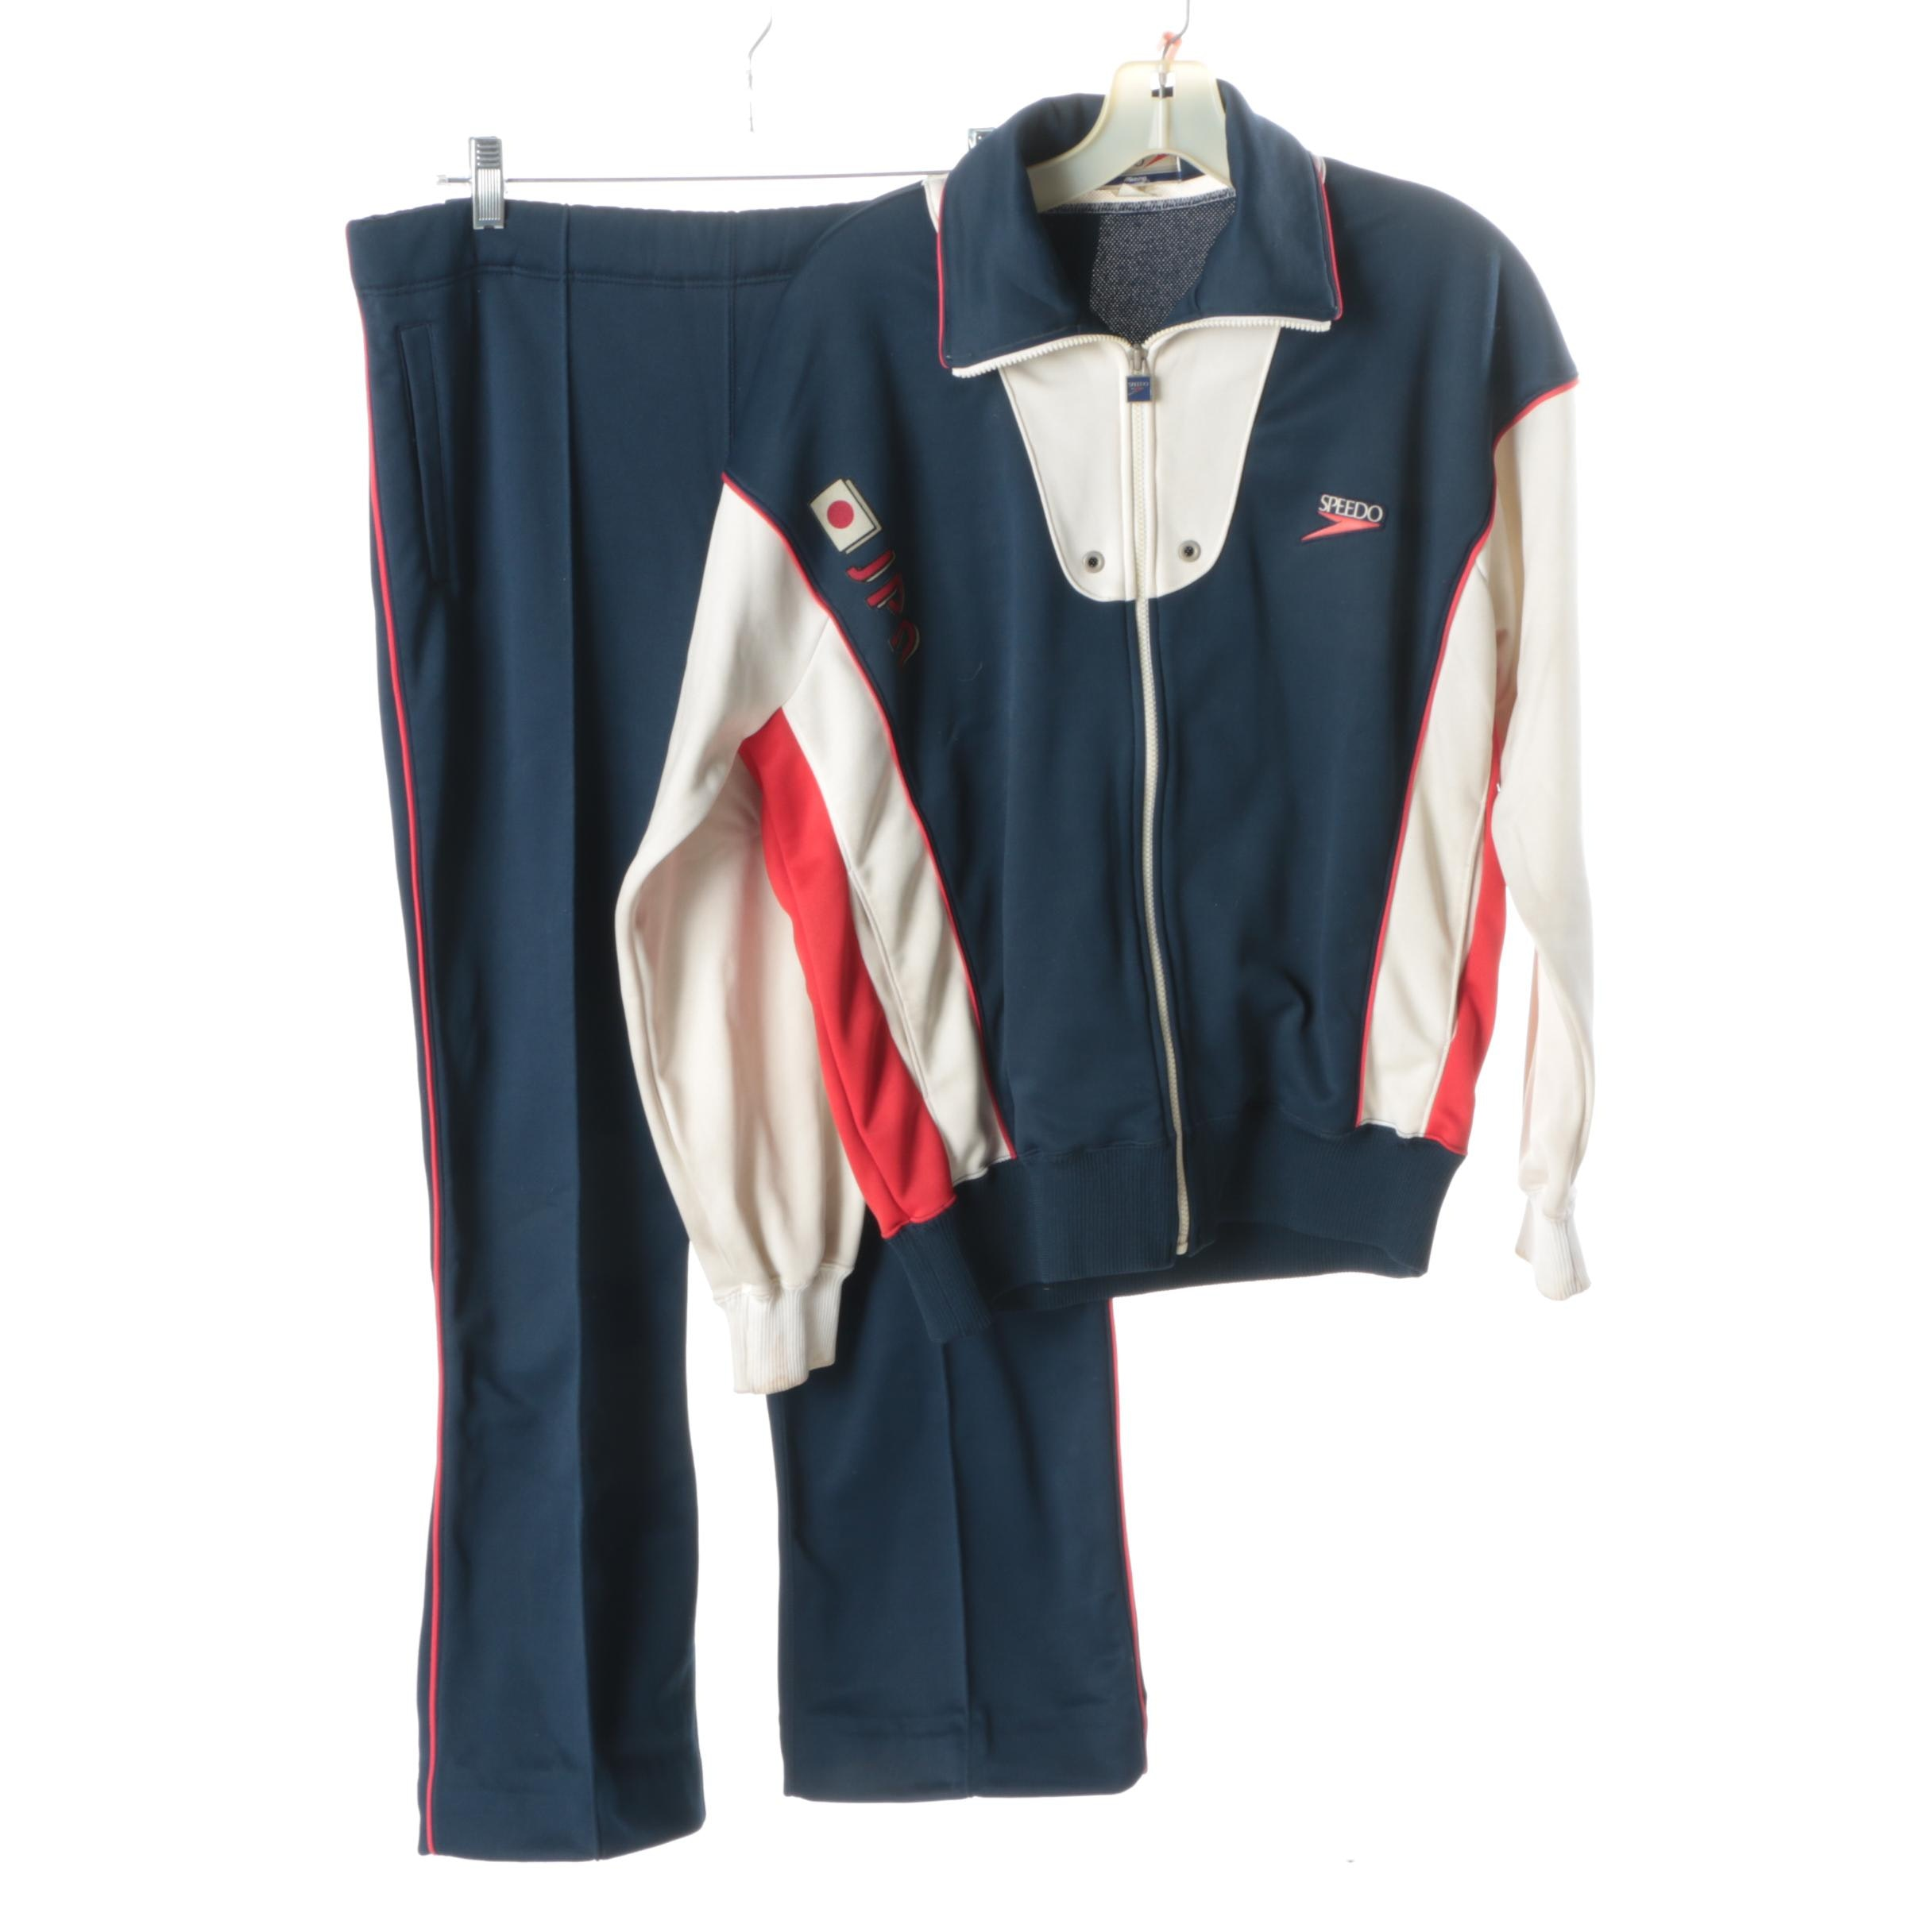 Vintage Japanese Swimming Speedo Warm-Up Suit